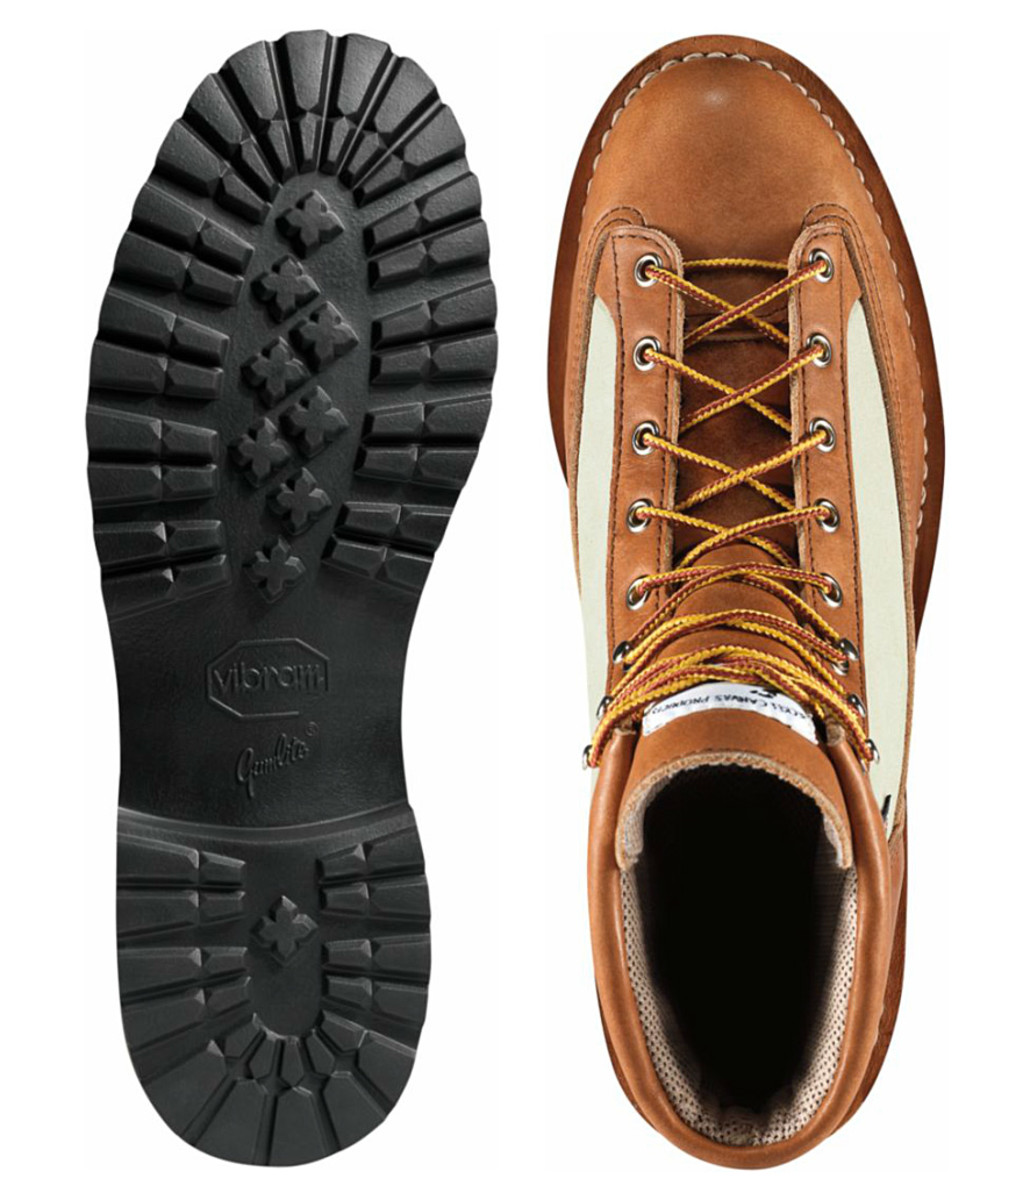 beckel-canvas-products-x-danner-light-beckel-boot-collection-12